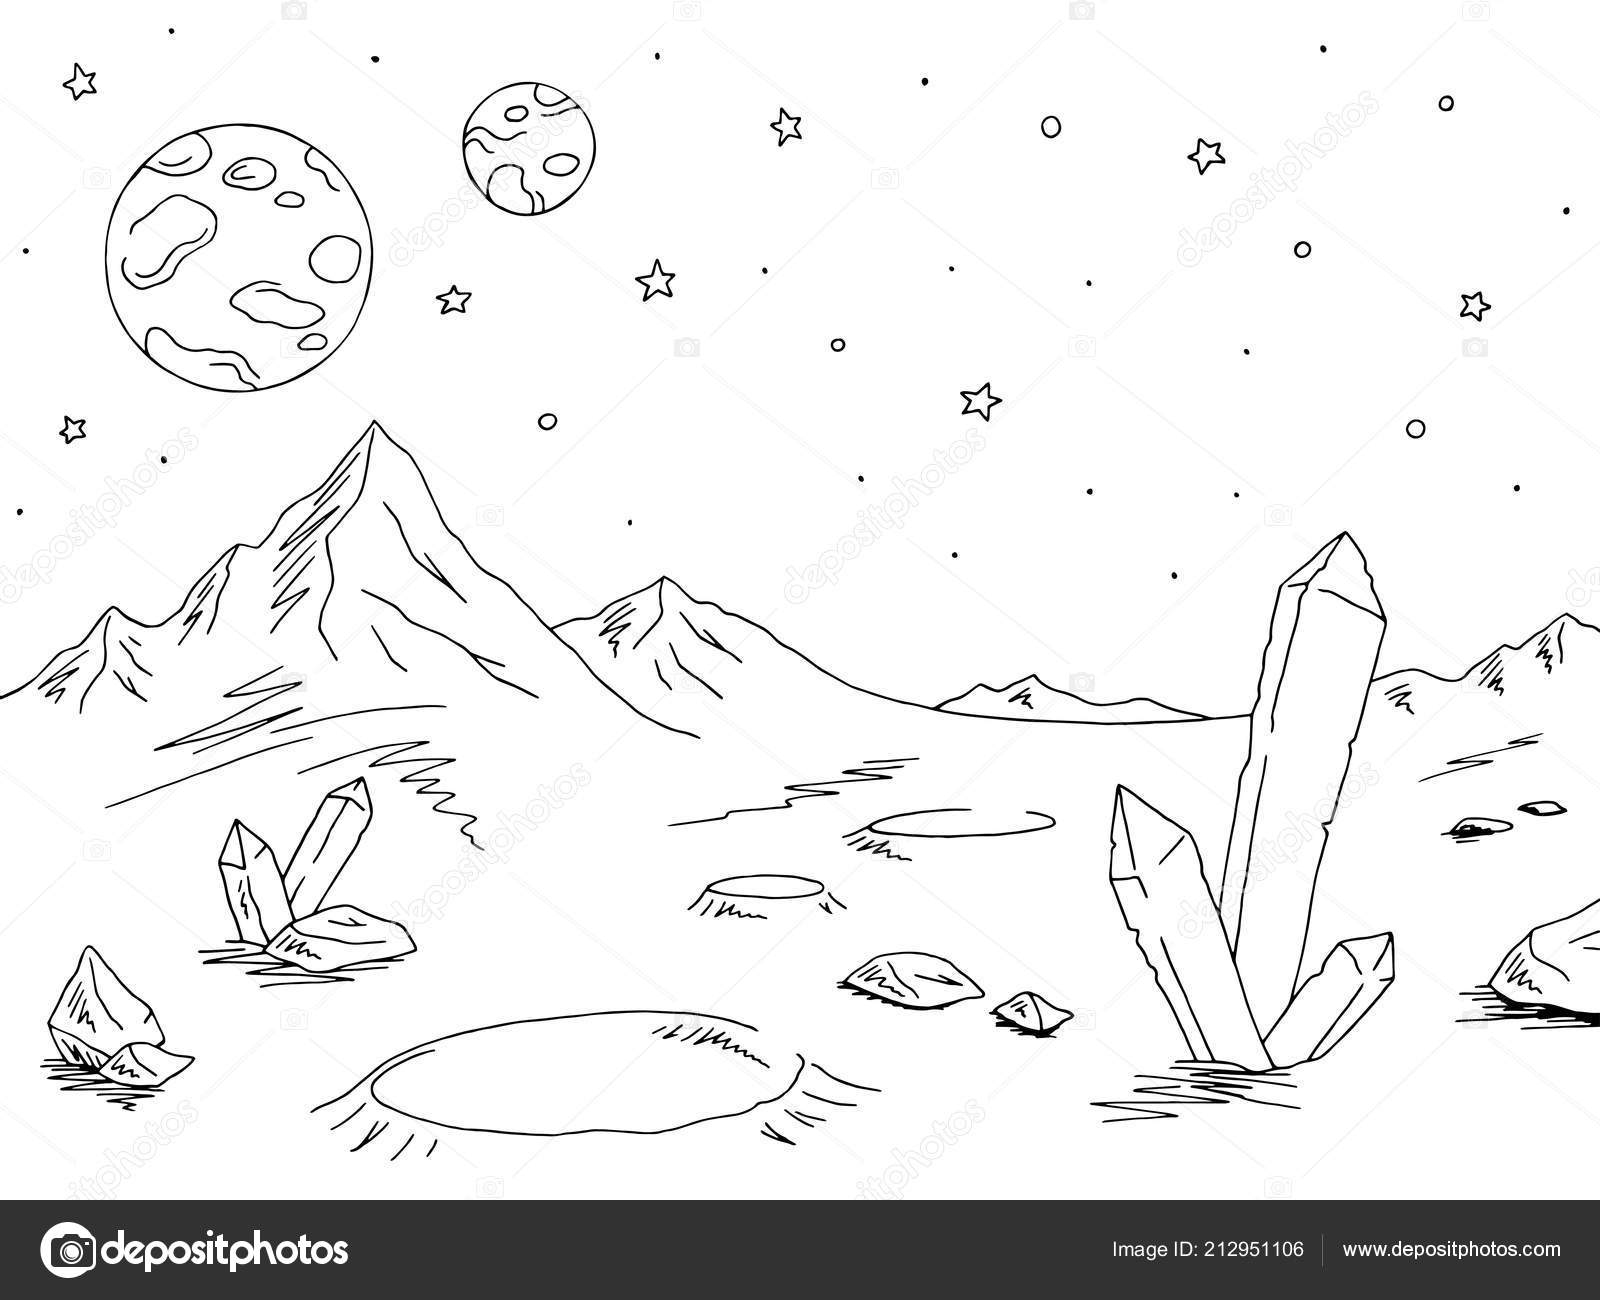 Alien Planet Graphic Black White Space Landscape Sketch